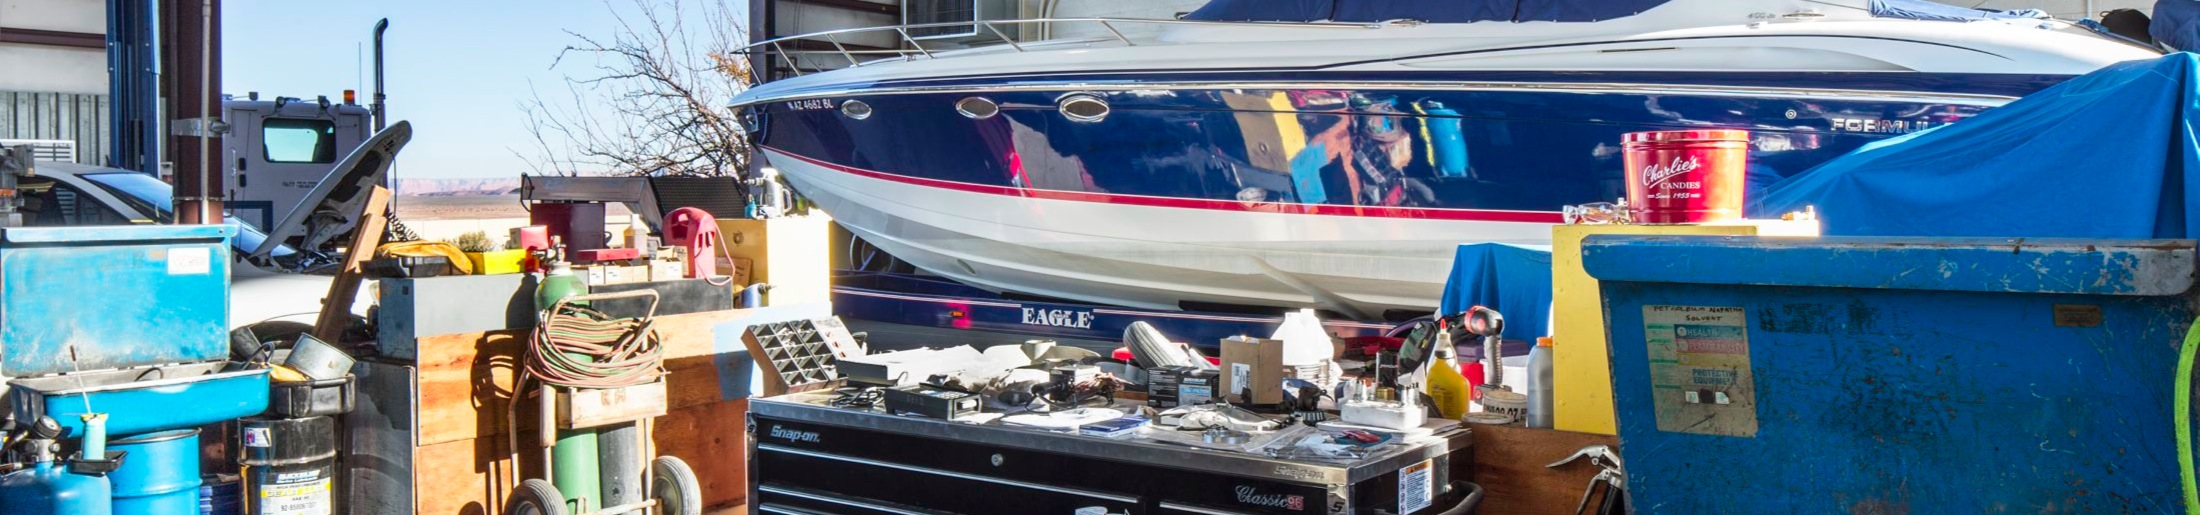 Mechanical Services offered at Lake Powell Marinas